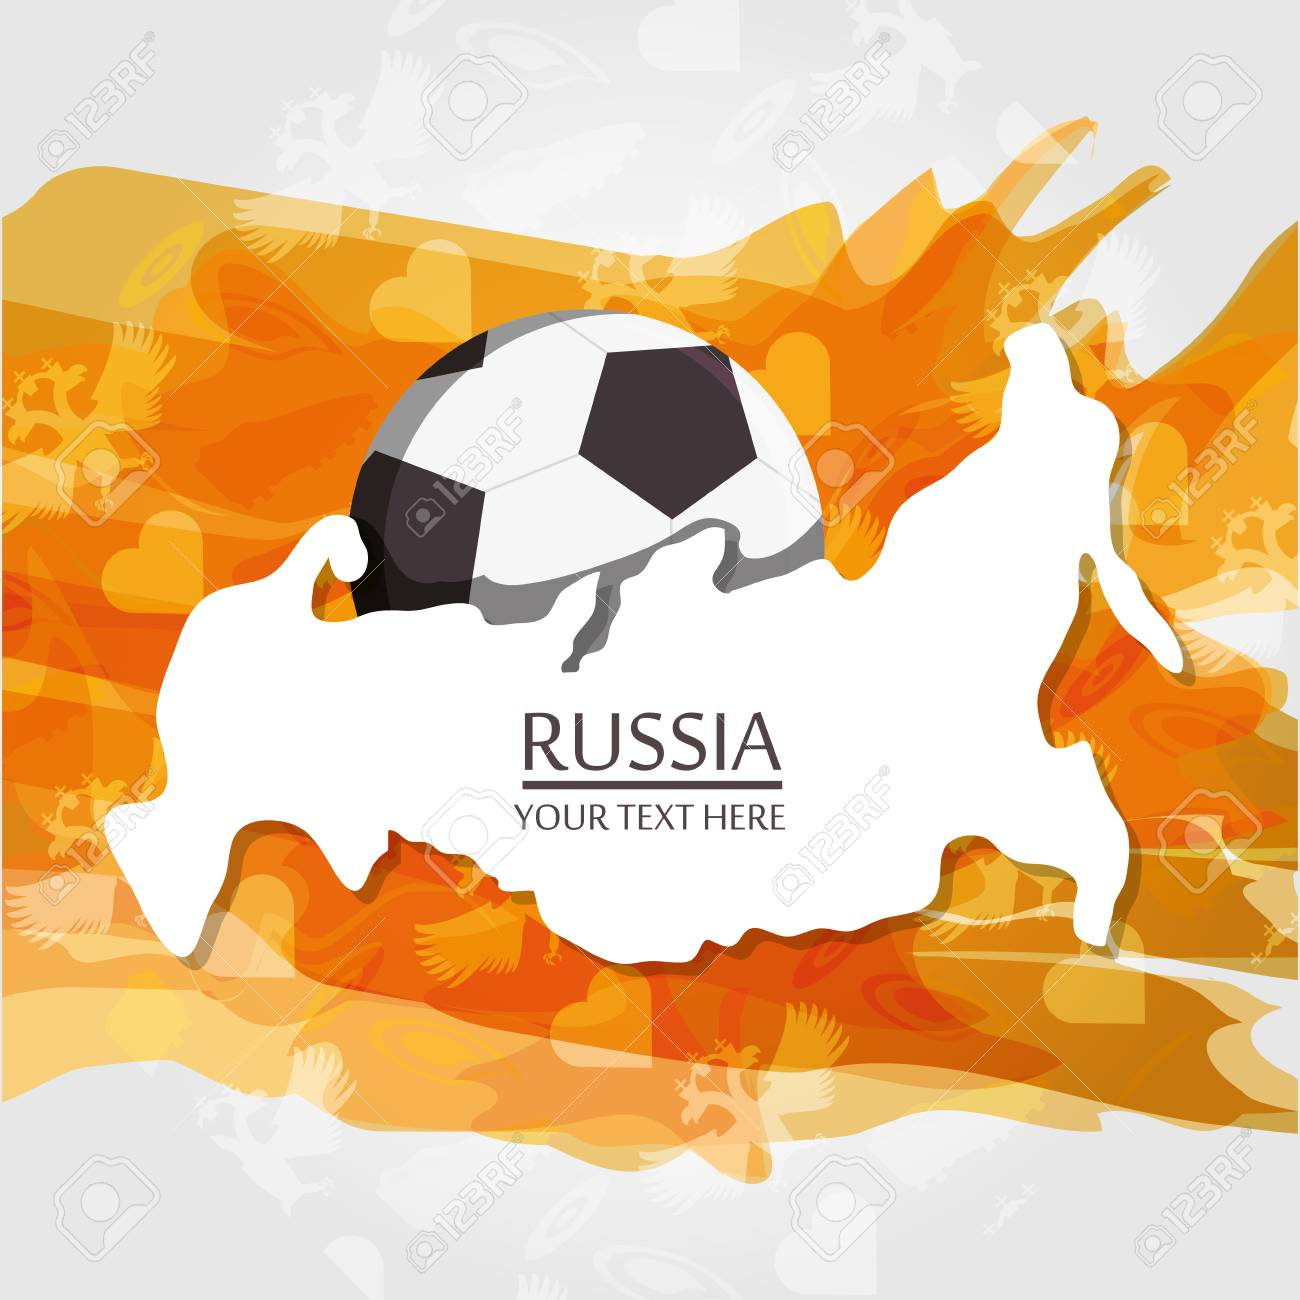 Russia design with russian map and soccer ball over orange and.. on korea map, china map, poland map, australia map, united kingdom map, france map, iraq map, soviet union map, europe map, africa map, italy map, asia map, saudi arabia map, romania map, india map, baltic map, canada map, japan map, eurasia map, germany map,